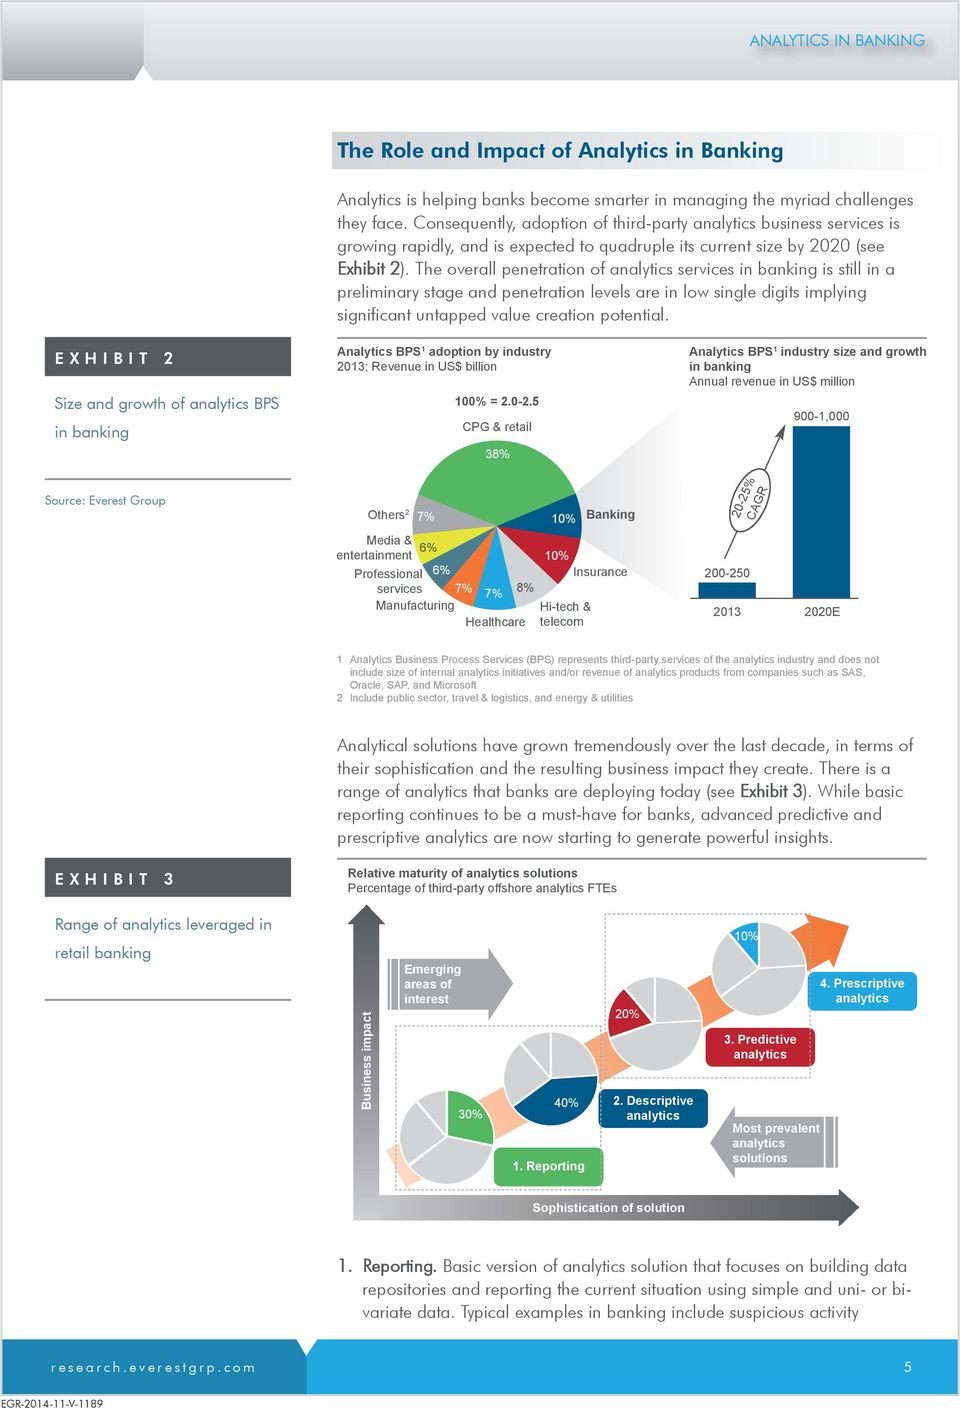 Analytics in Banking AN EVEREST GROUP REPORT  This report